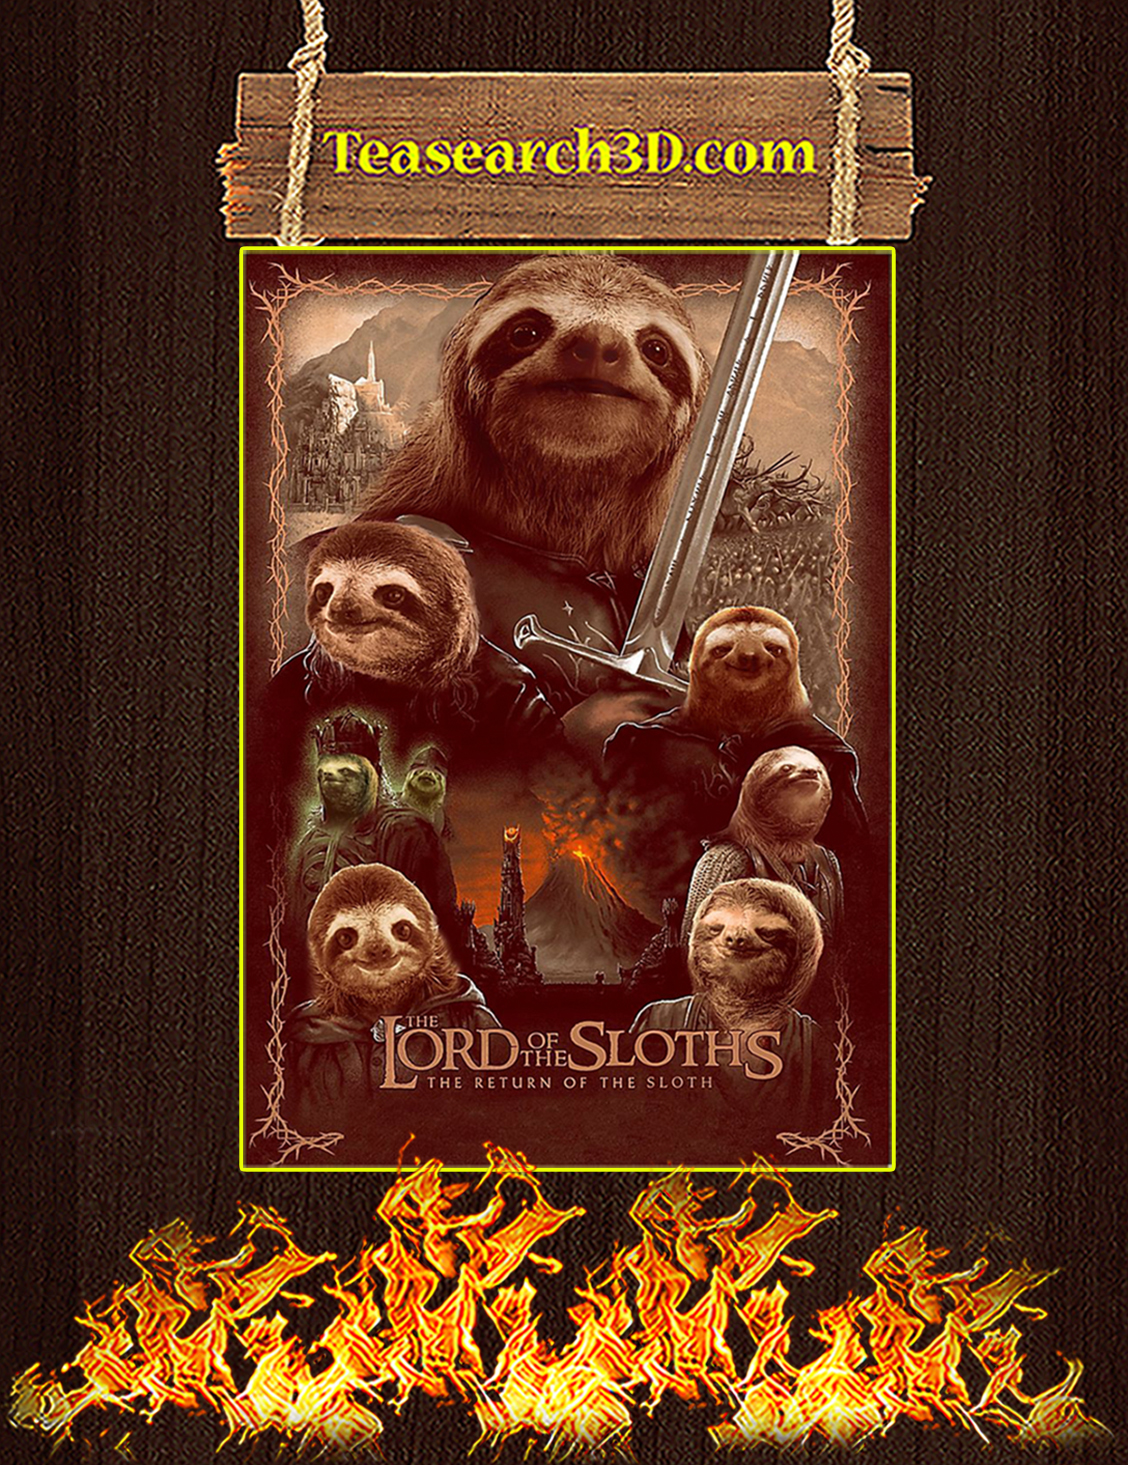 Lord of the sloths parody poster A3